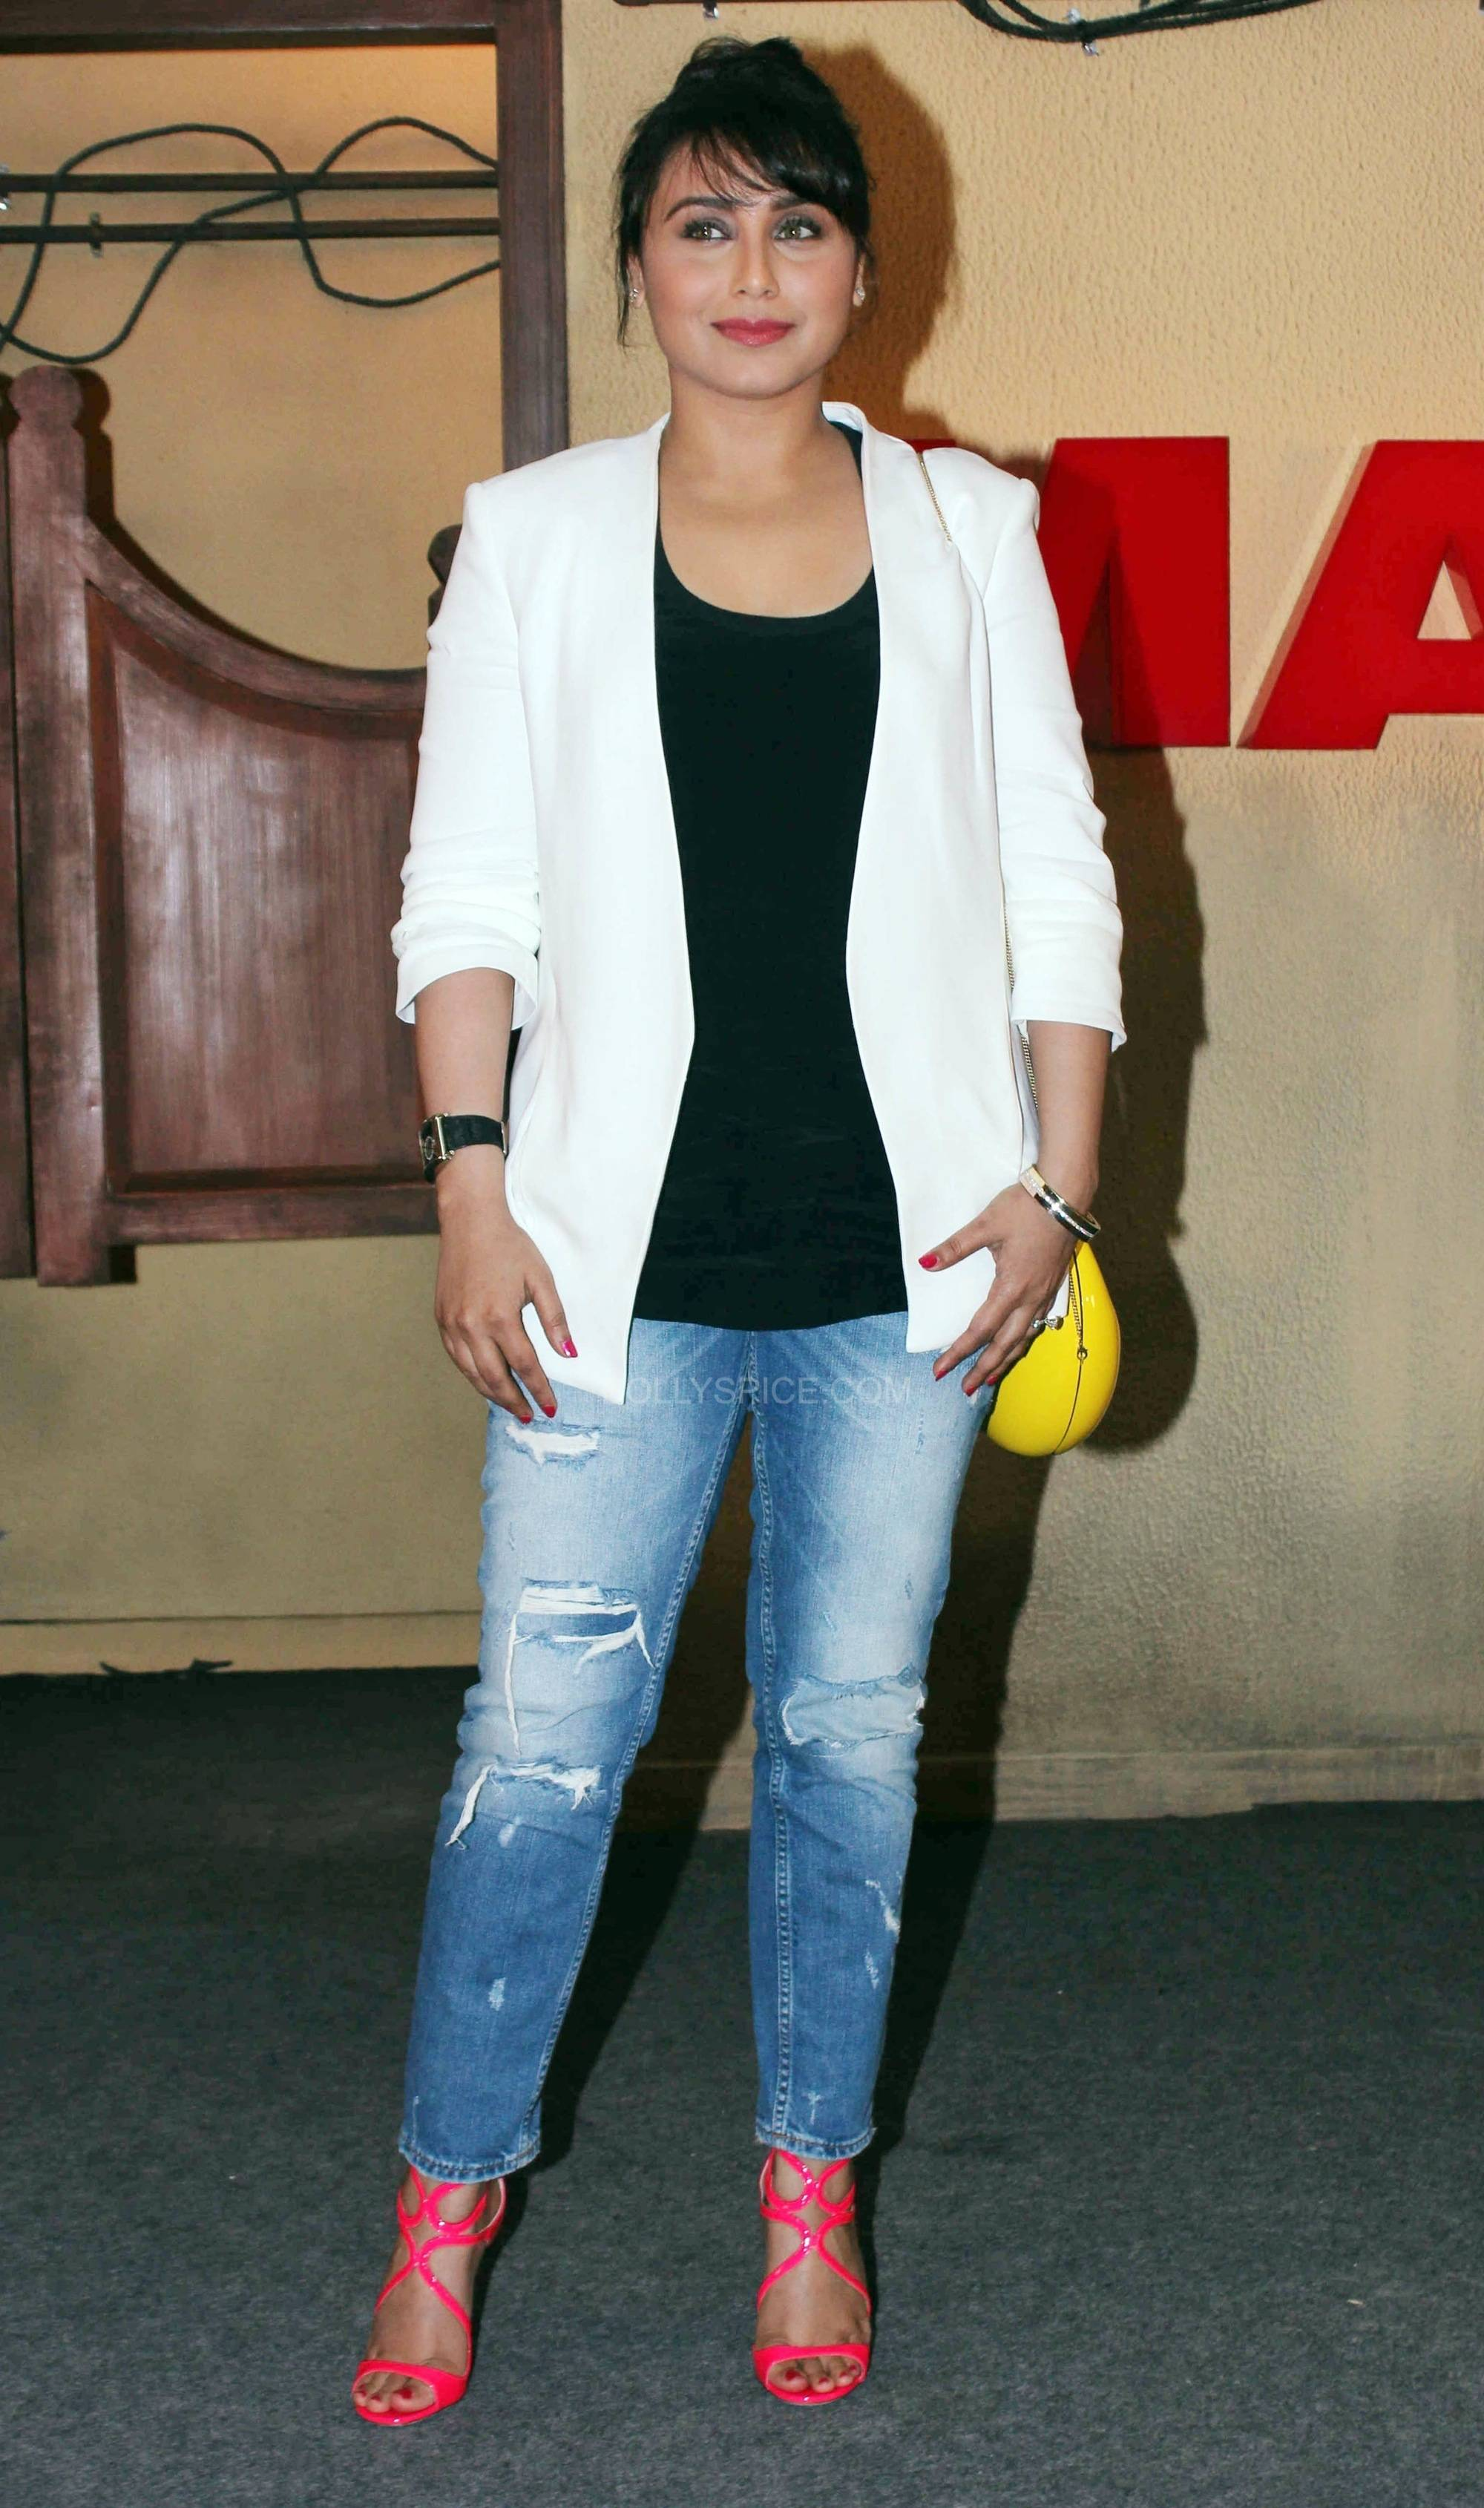 ranimardaanitrailerlaunch8 In Pictures: Rani at Mardaani Trailer Launch